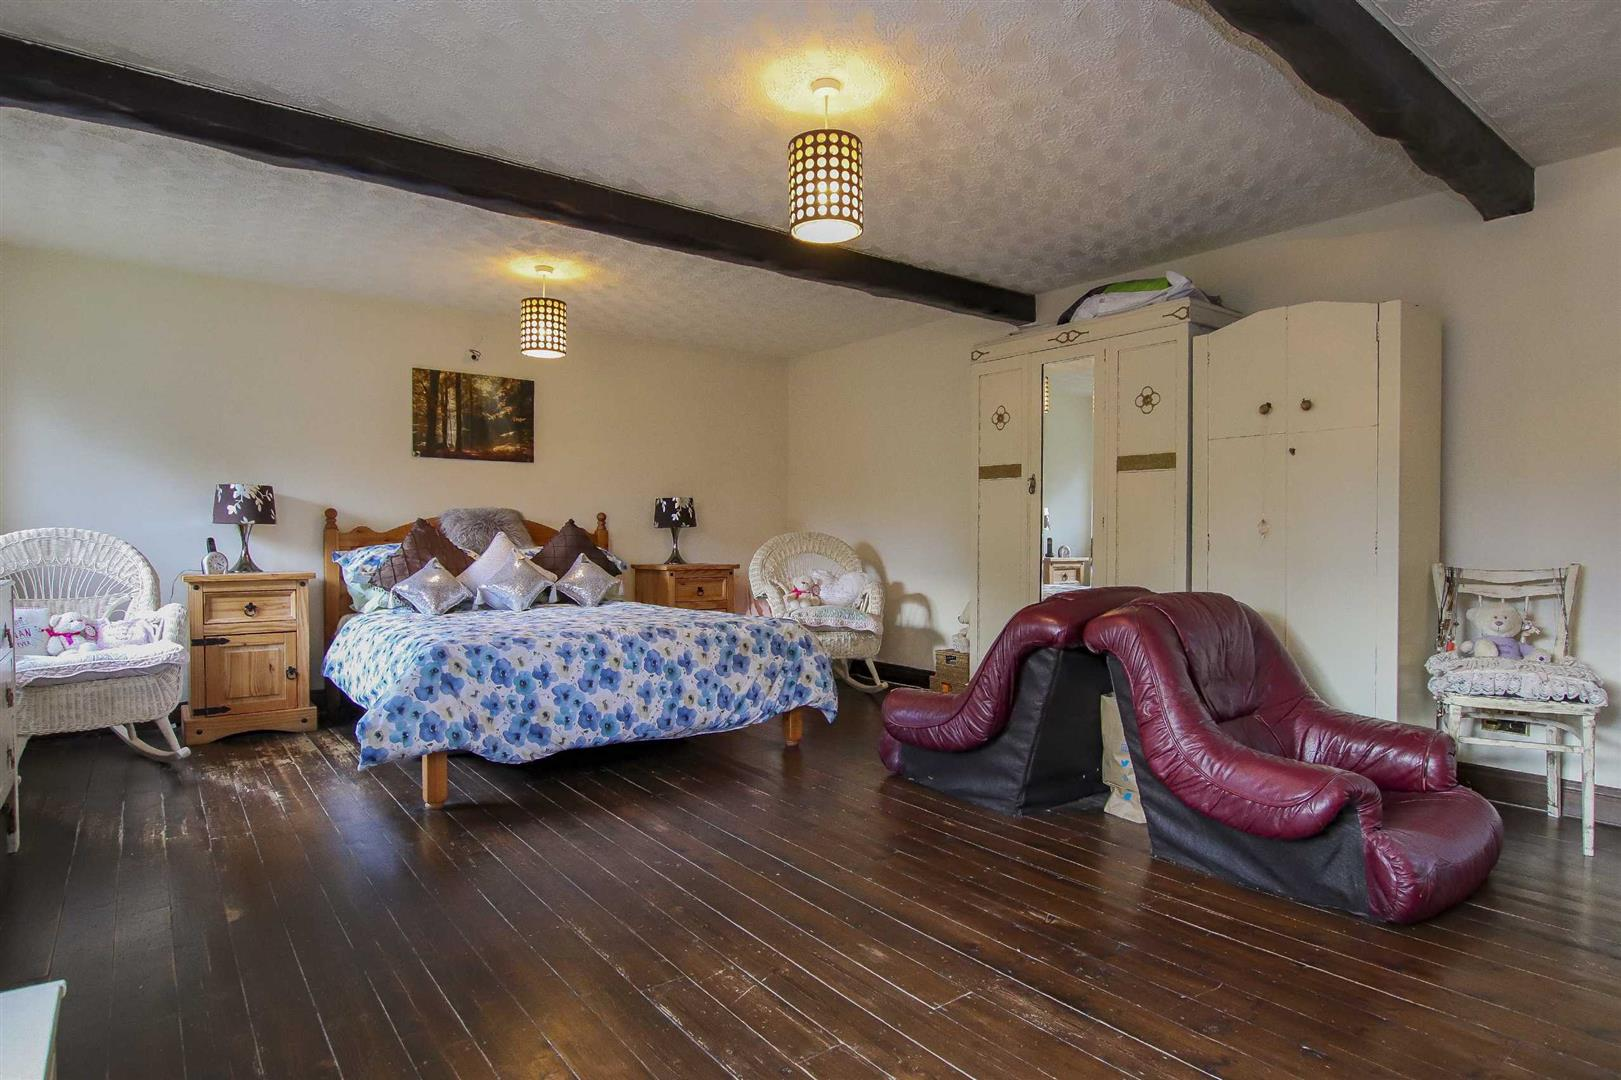 9 Bedroom Barn Conversion For Sale - Image 15